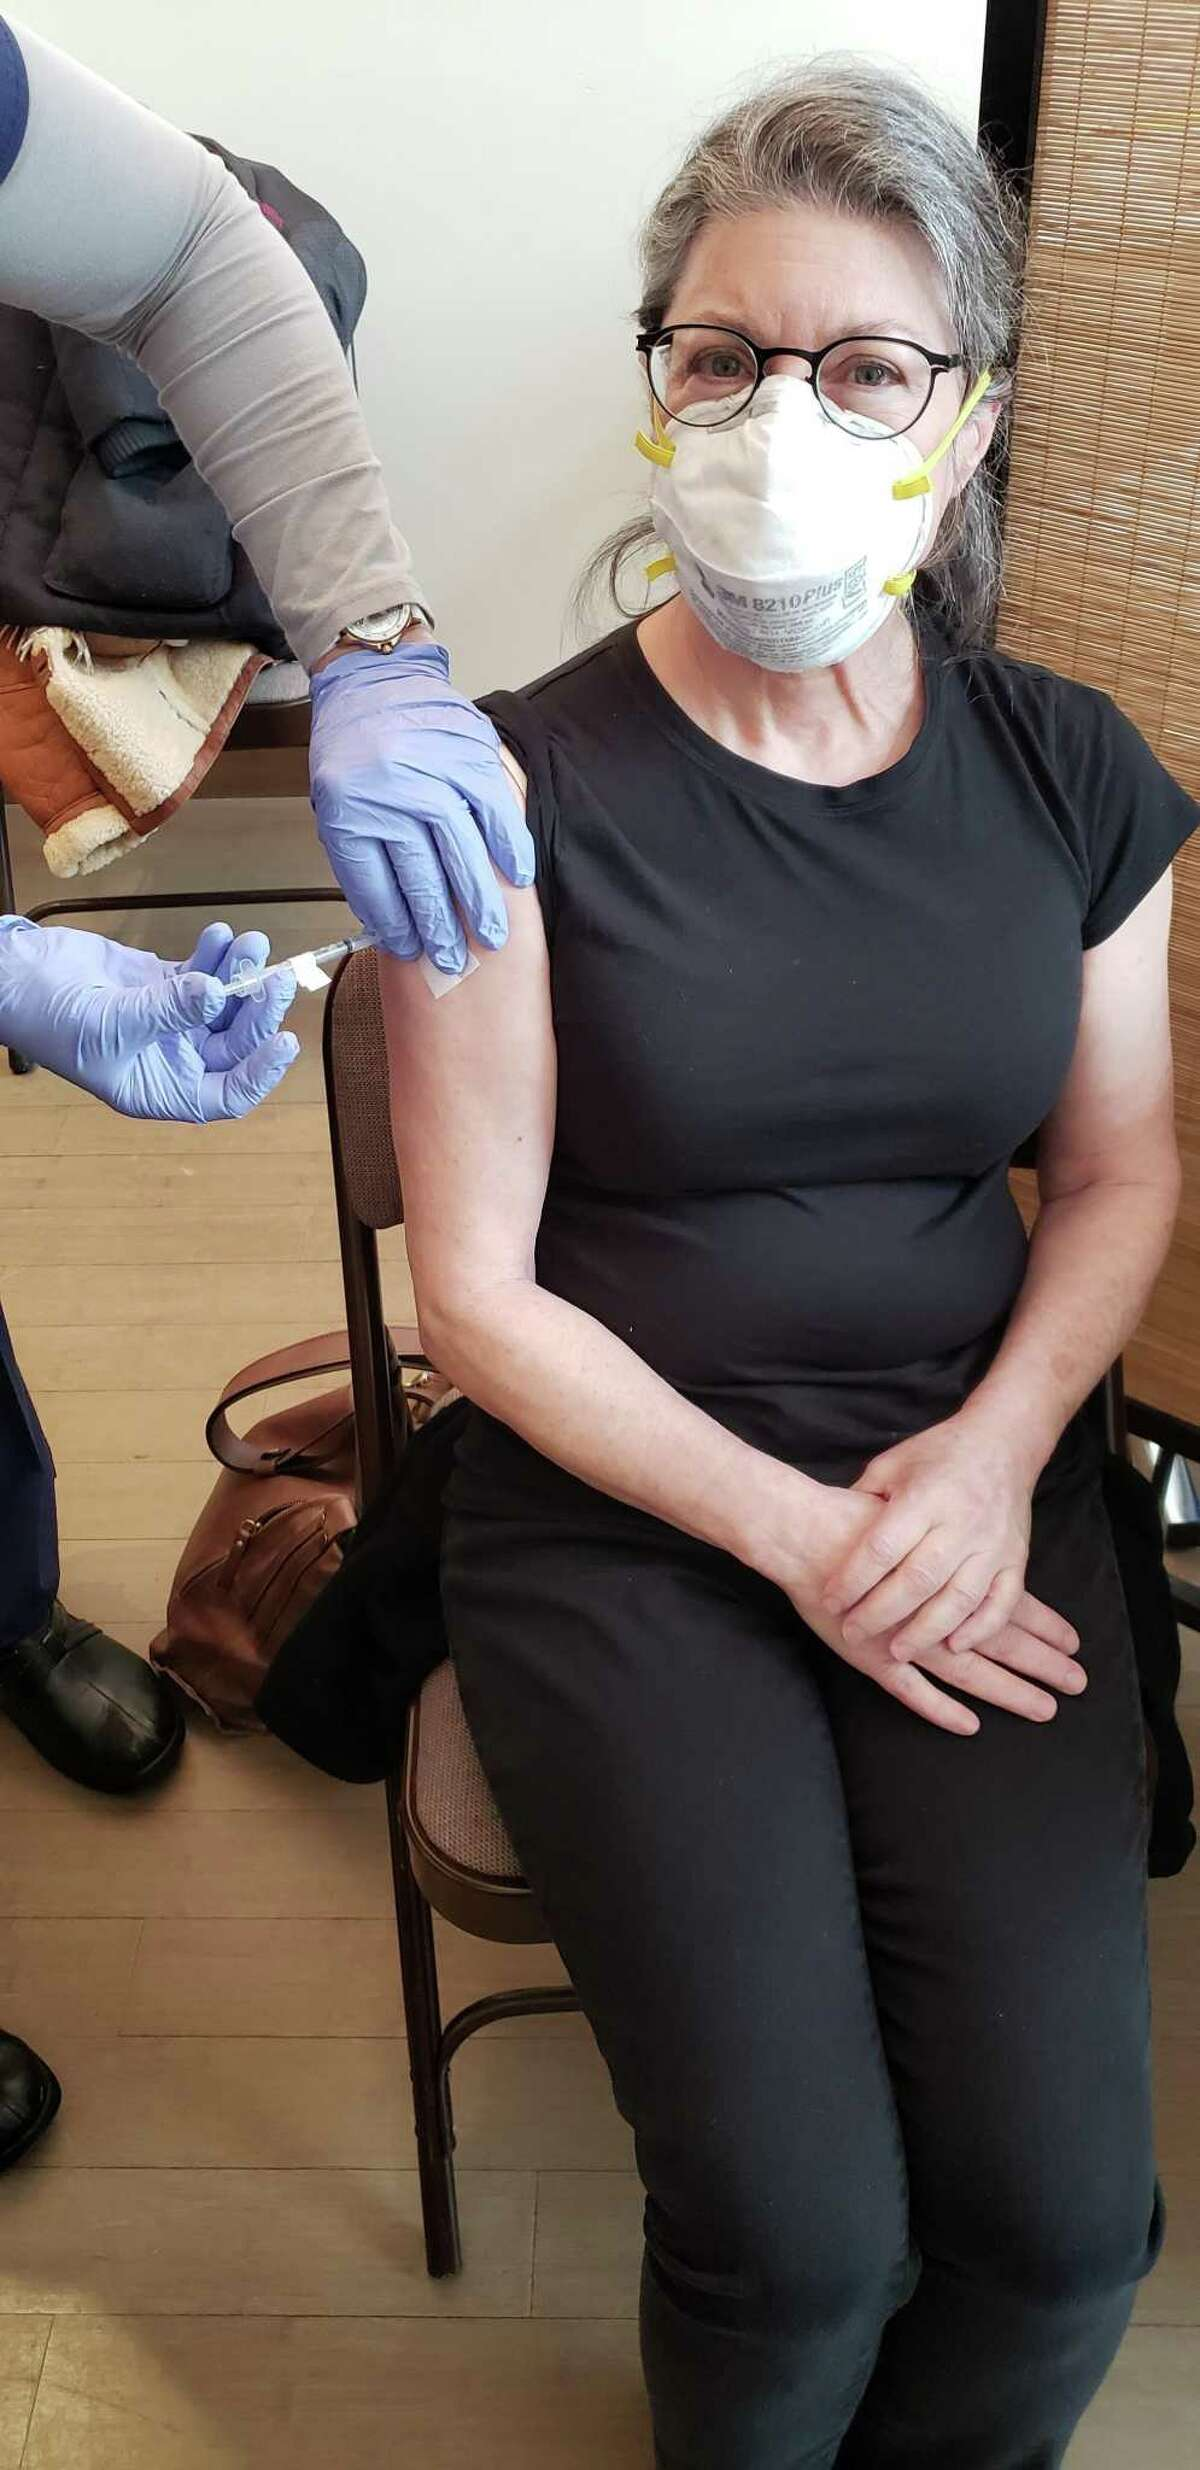 Goshen resident Leya Edison got her first COVID-19 vaccine Monday at a clinic in Kent, and was able to make a second appointment while she was there.